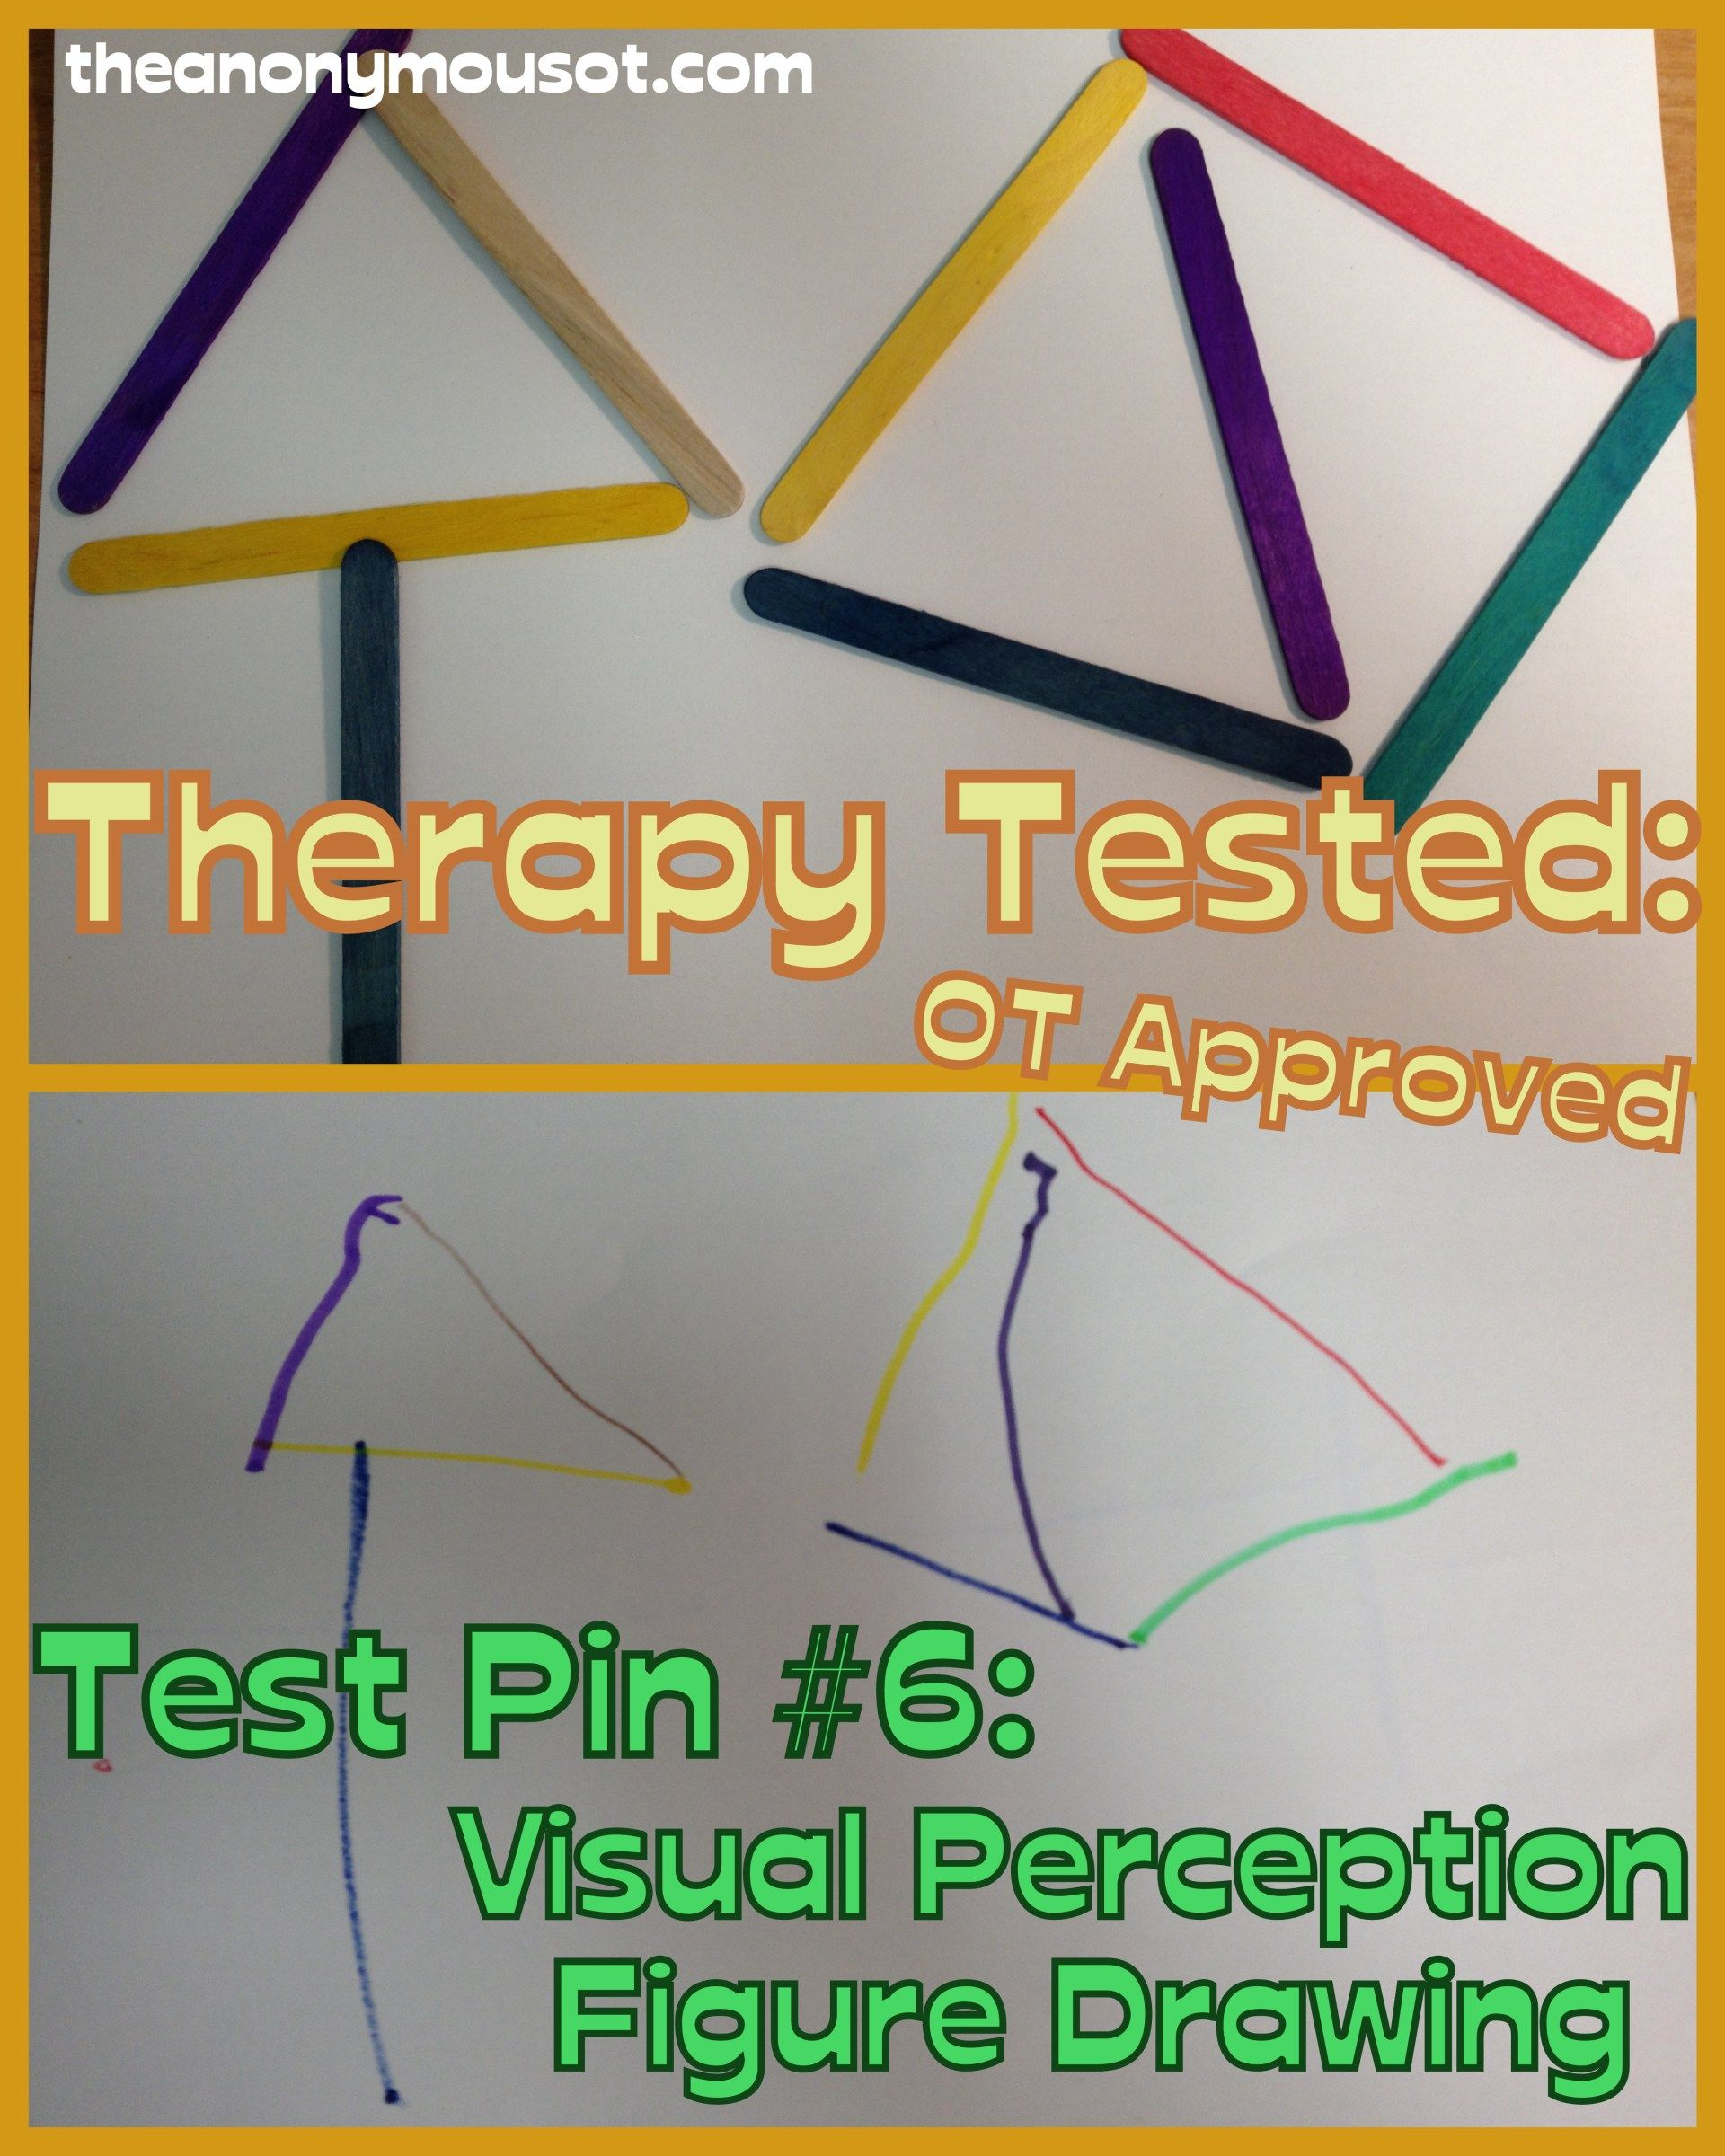 Visual Perception Figure Drawing